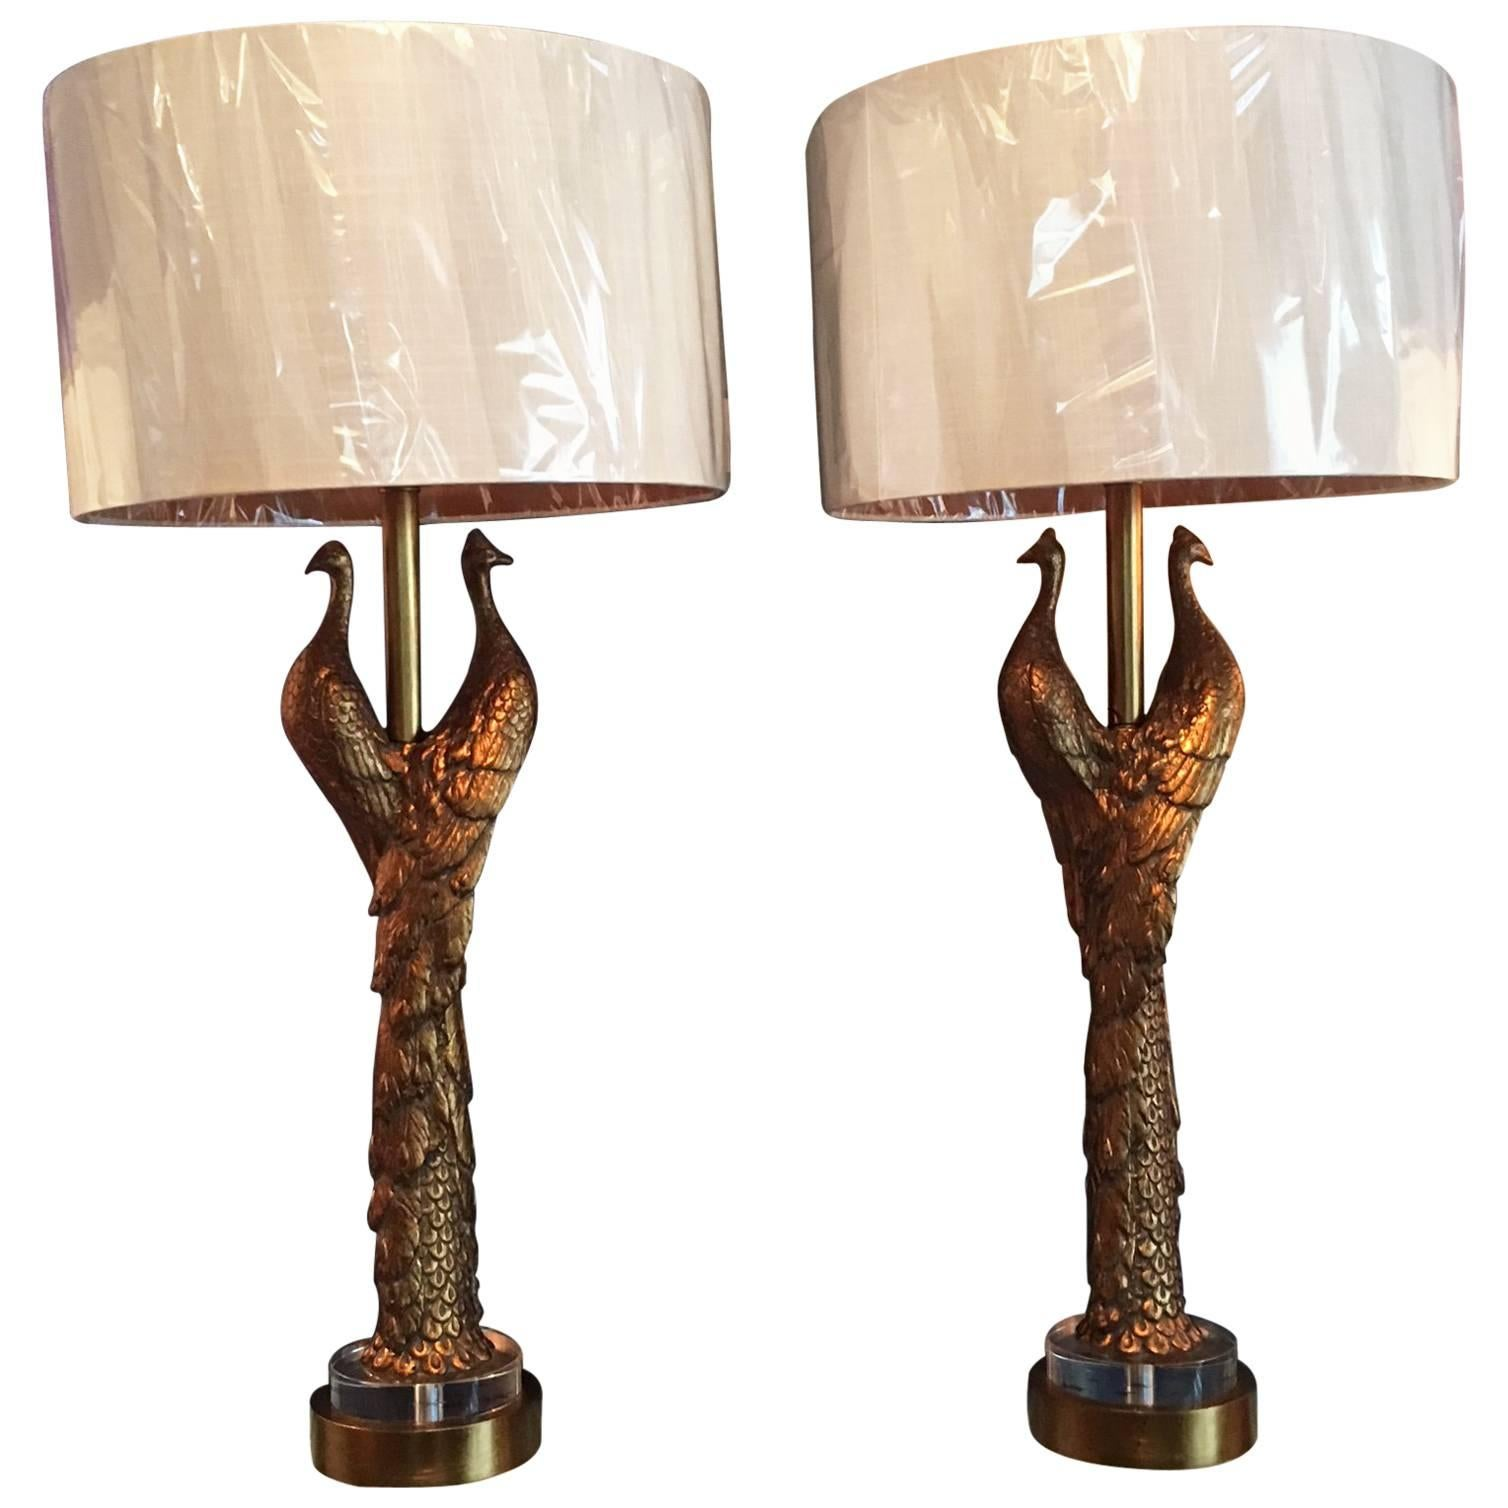 Captivating Pair Of New Peacock Lamps For Sale